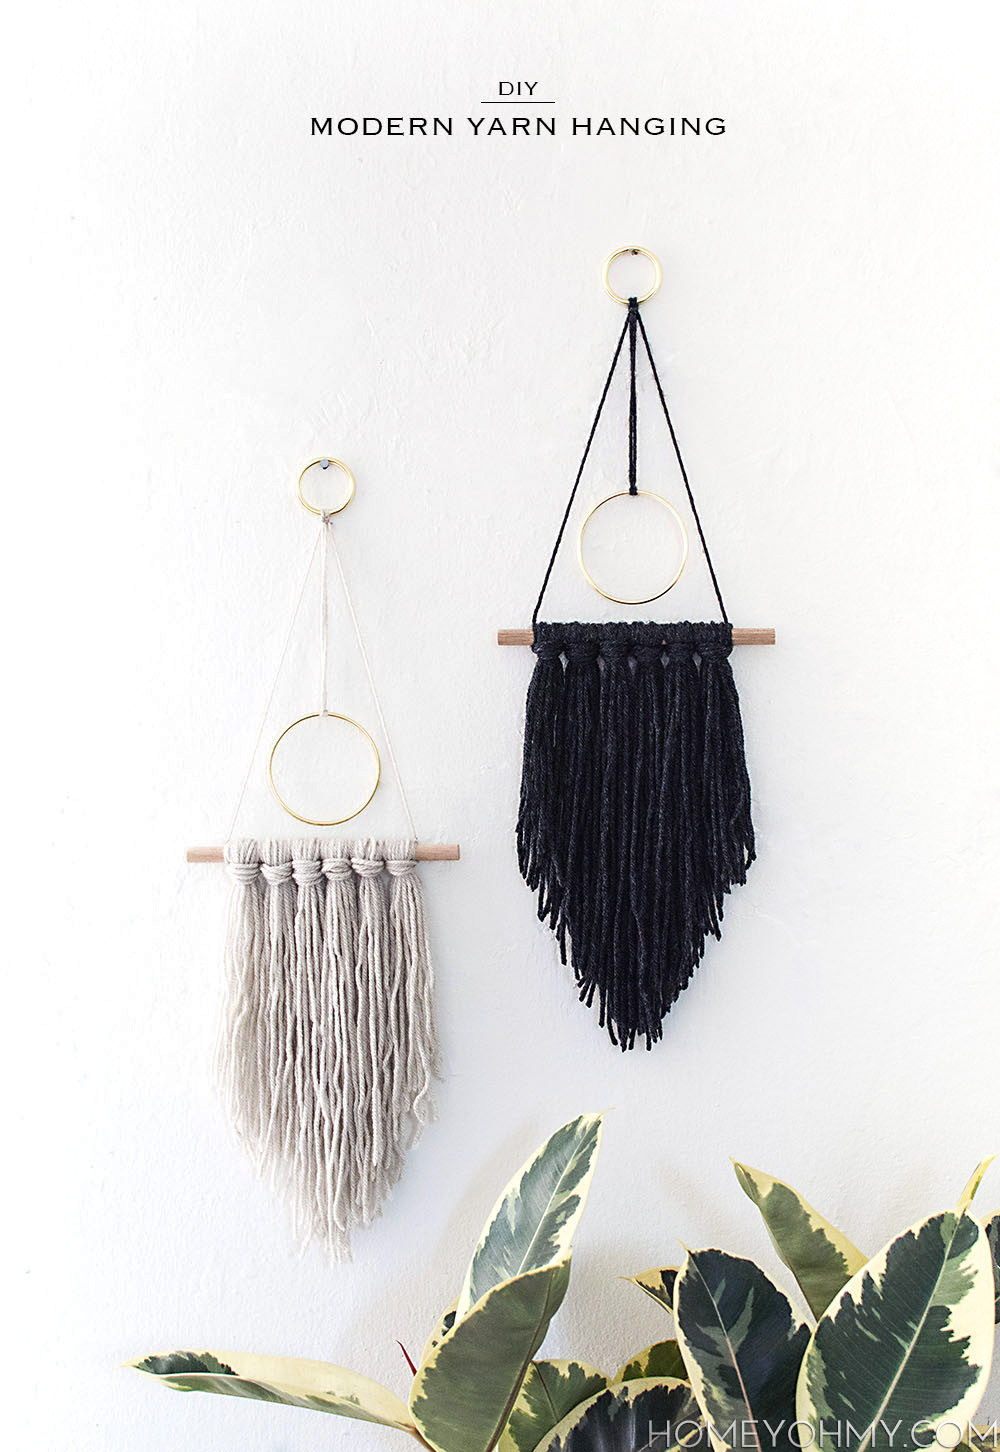 Wall Hangings diy double ring wall hanging - homey oh my